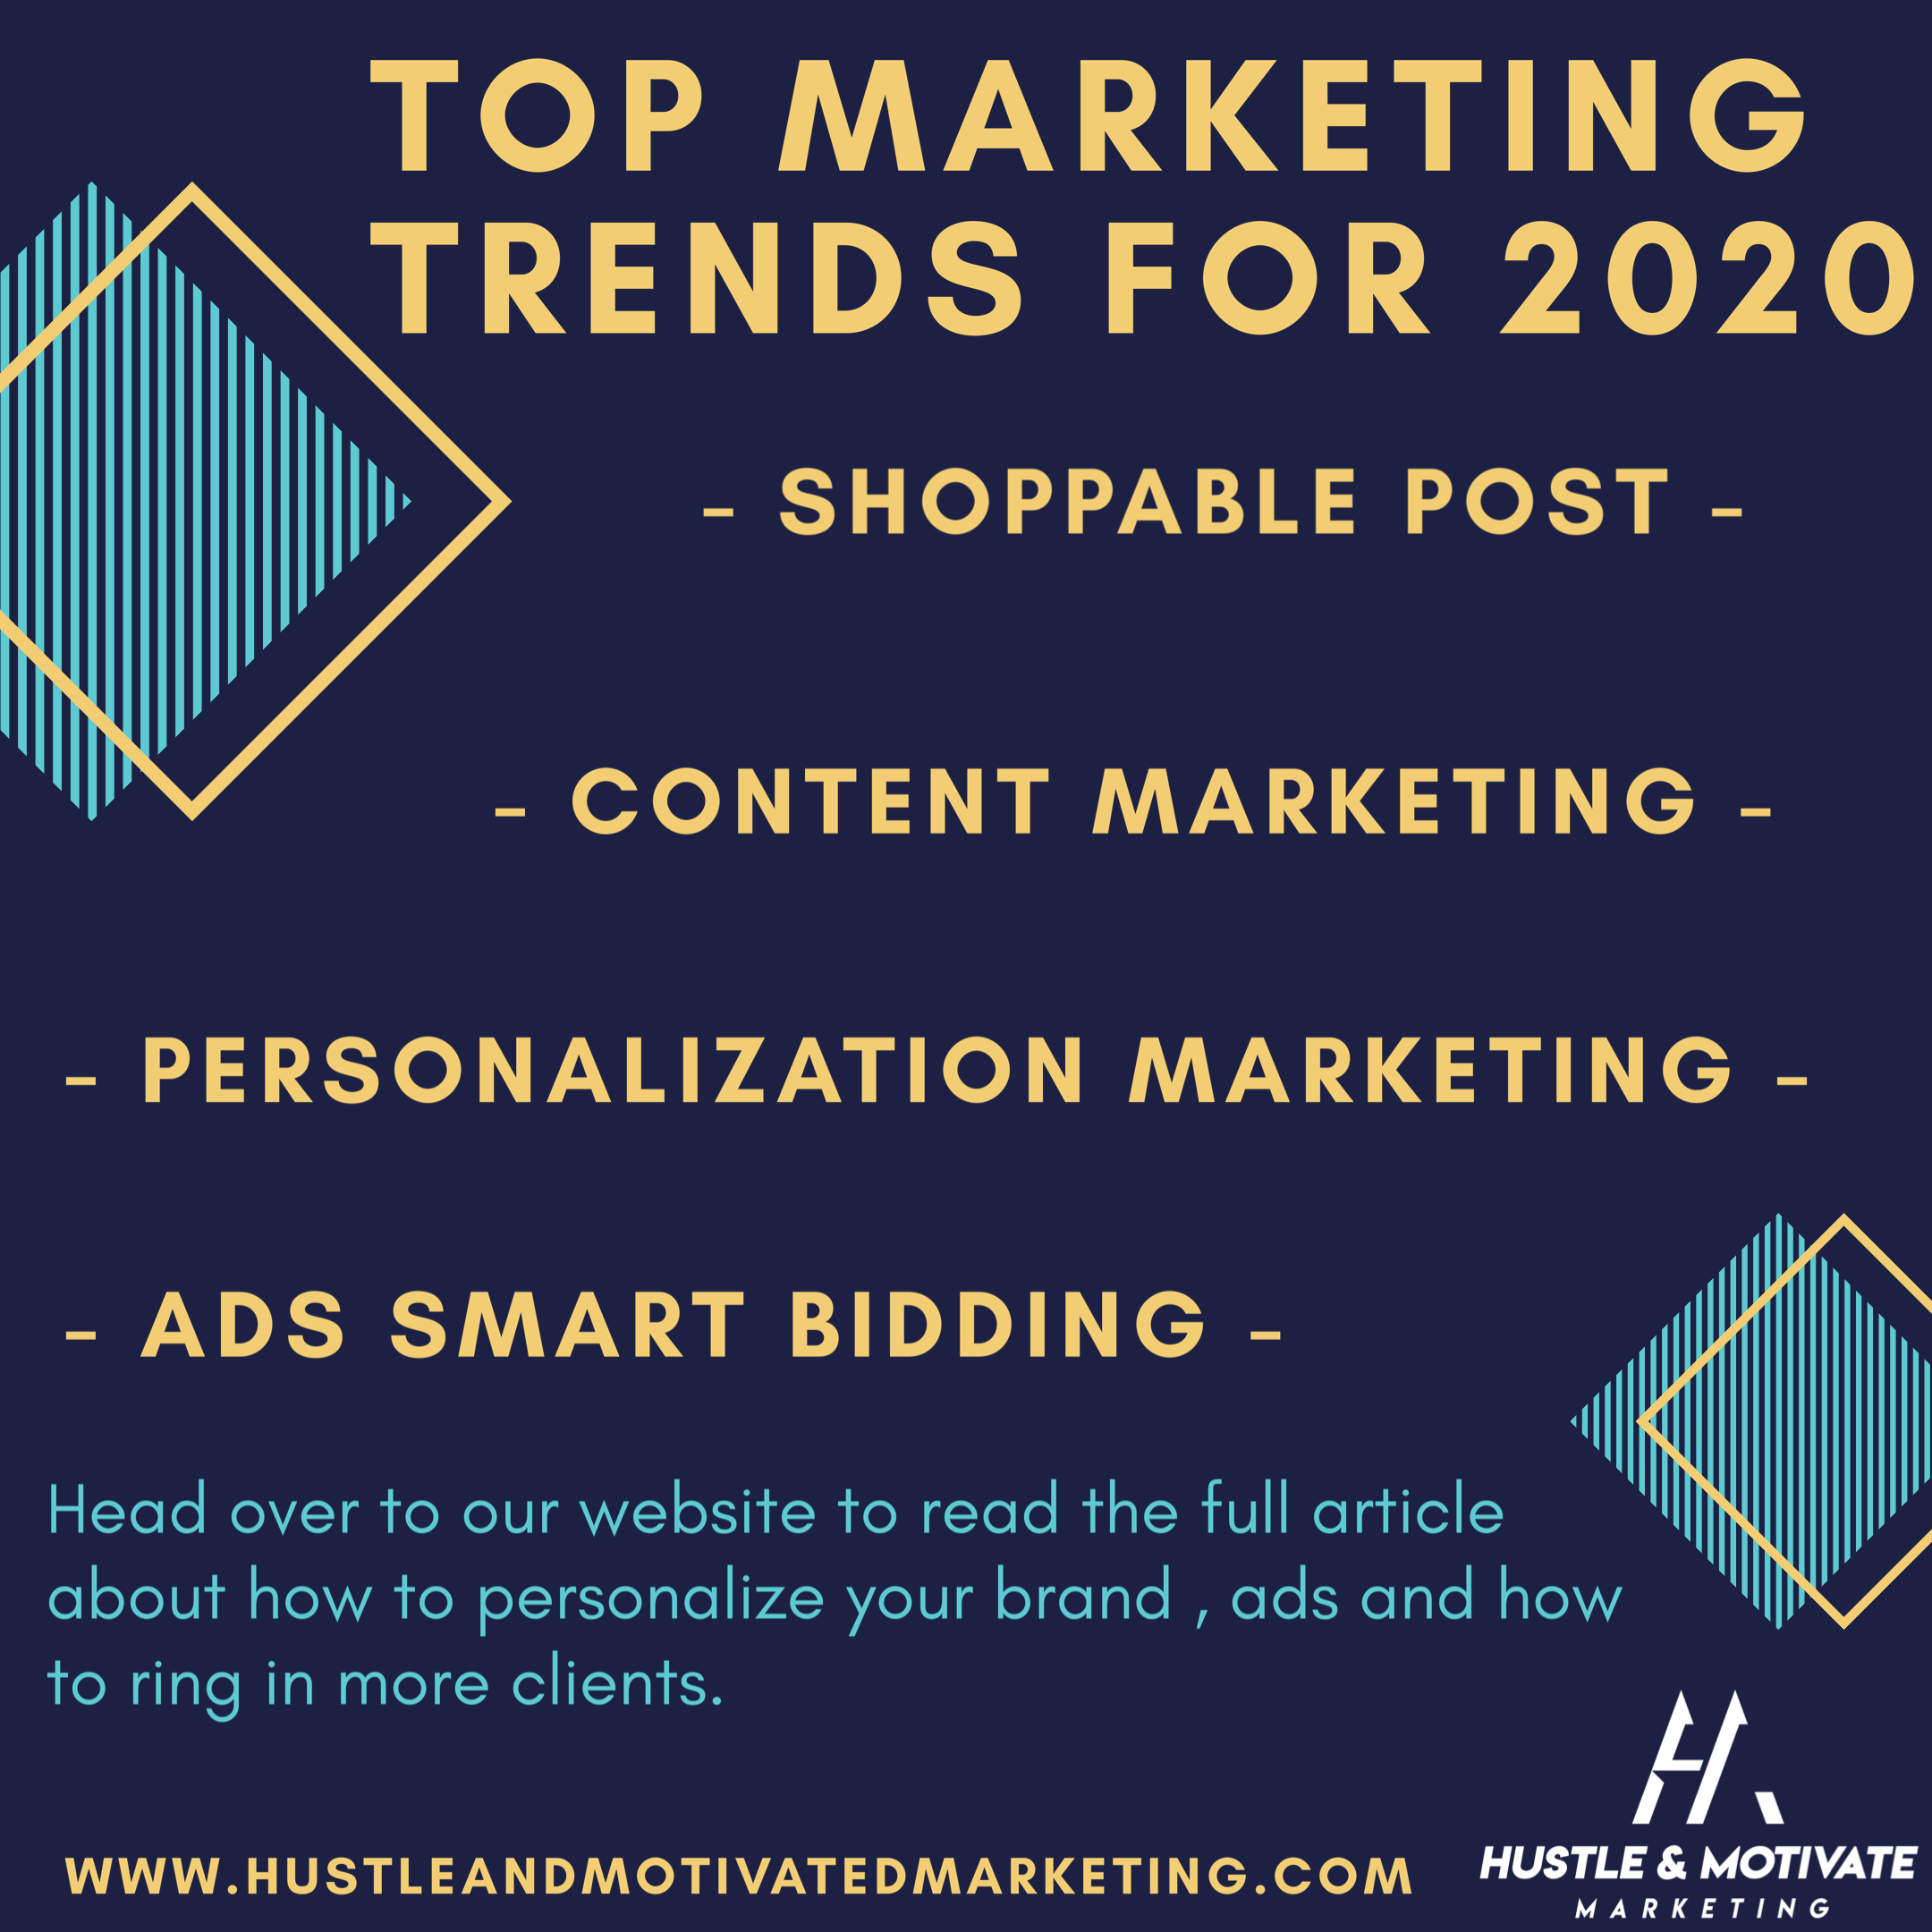 Monday Tips: Top Marketing Trends for 2020